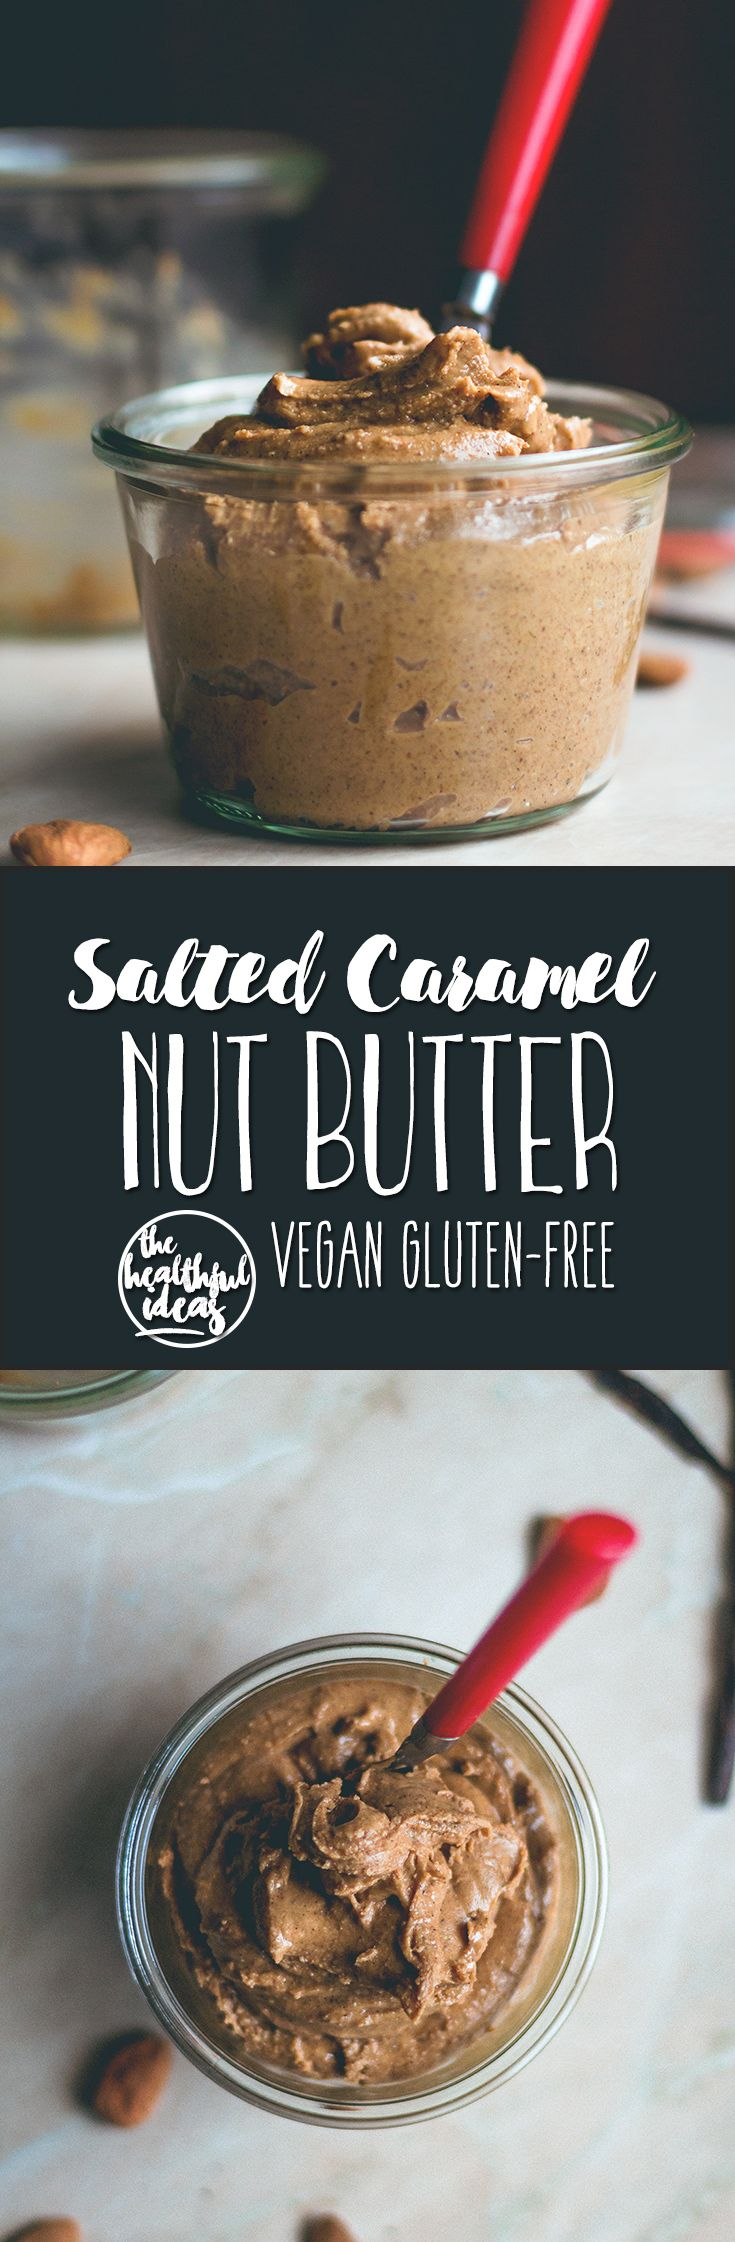 Salted Caramel Nut Butter (made with cashews, almonds) This recipe is vegan, contains no processed sugar, and is really easy to make. It's creamy, thick, and sticky. | thehealthfulideas.com